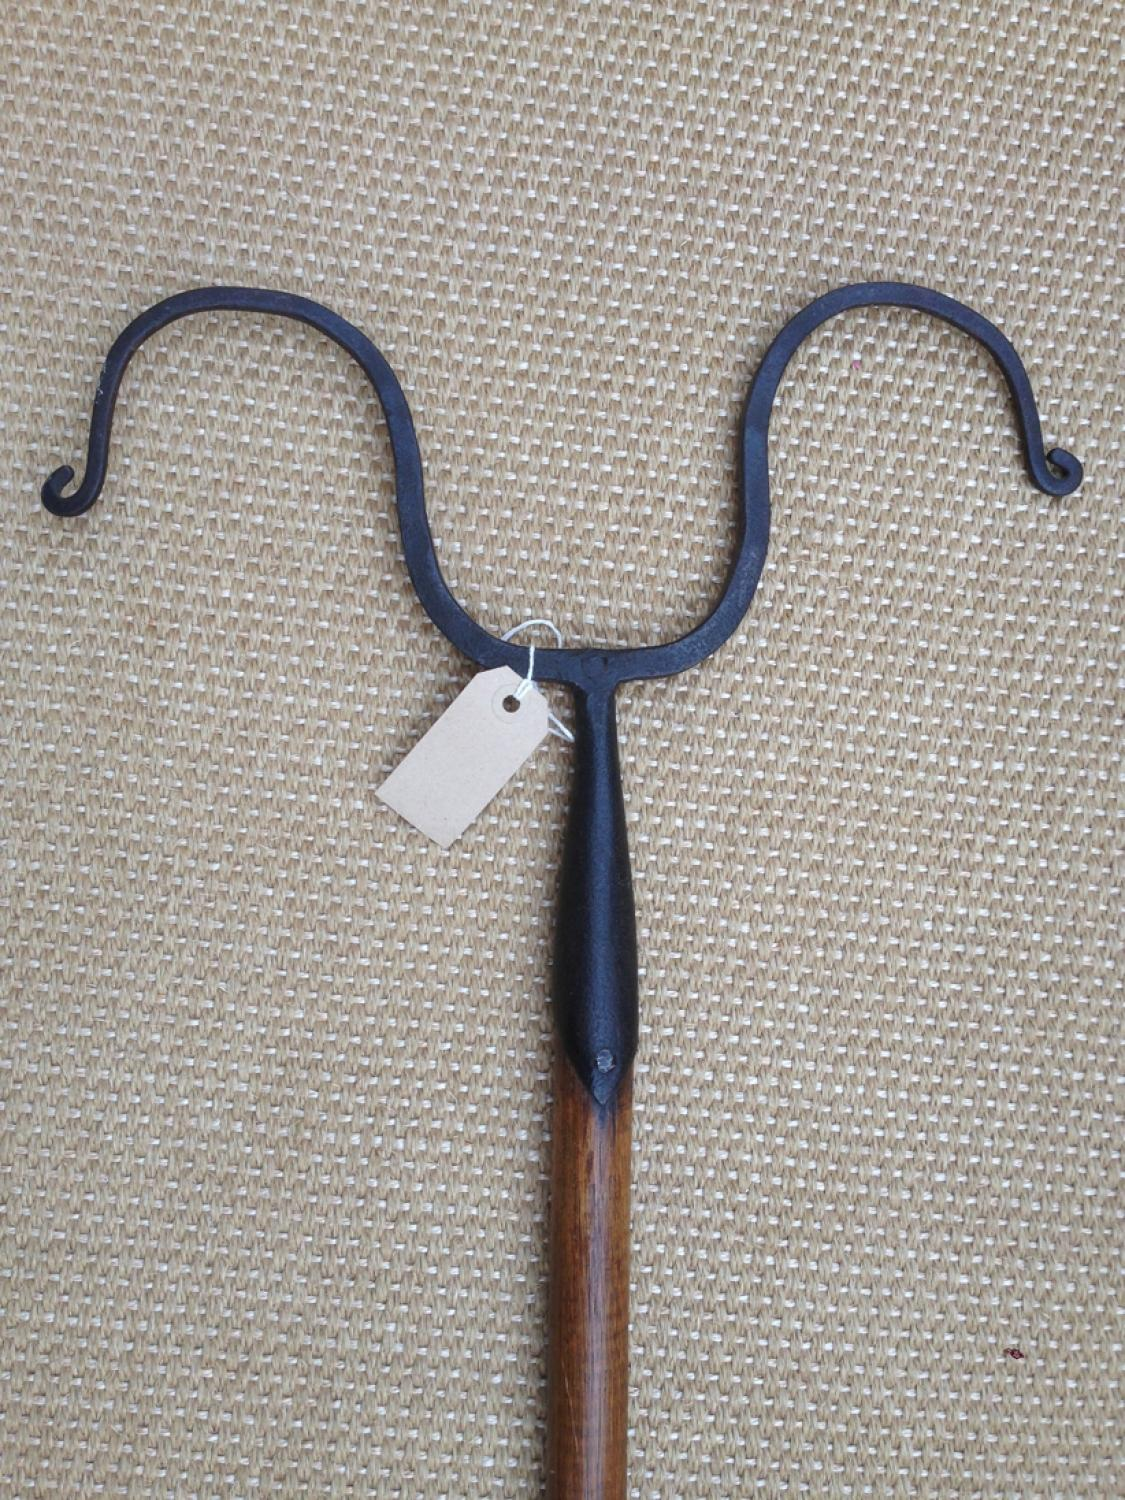 Antique Shepherd's Dipping Crook